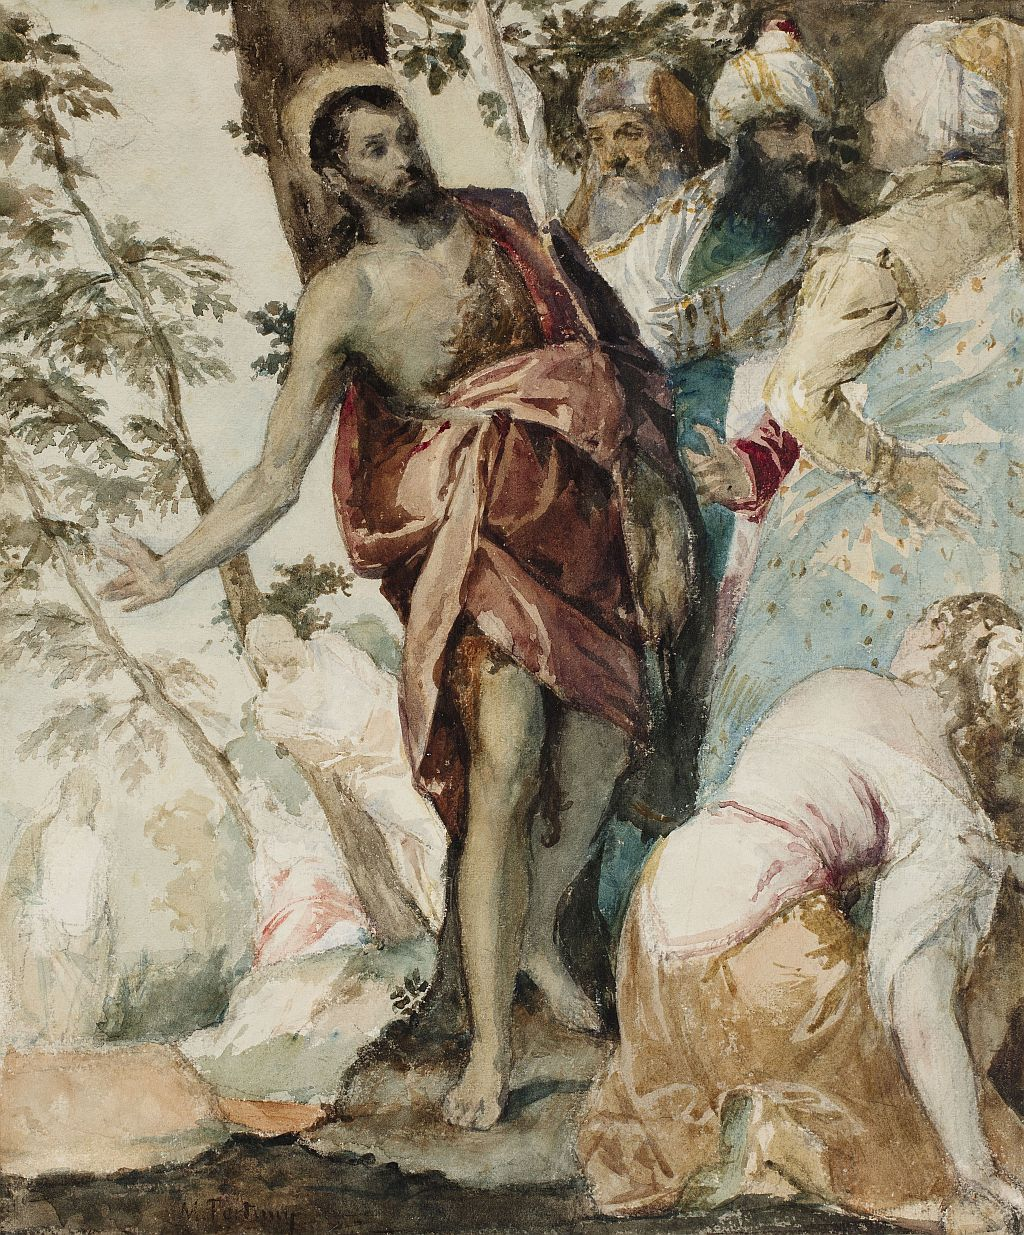 Marià Fortuny, Saint John the Baptist preaching, following Veronese